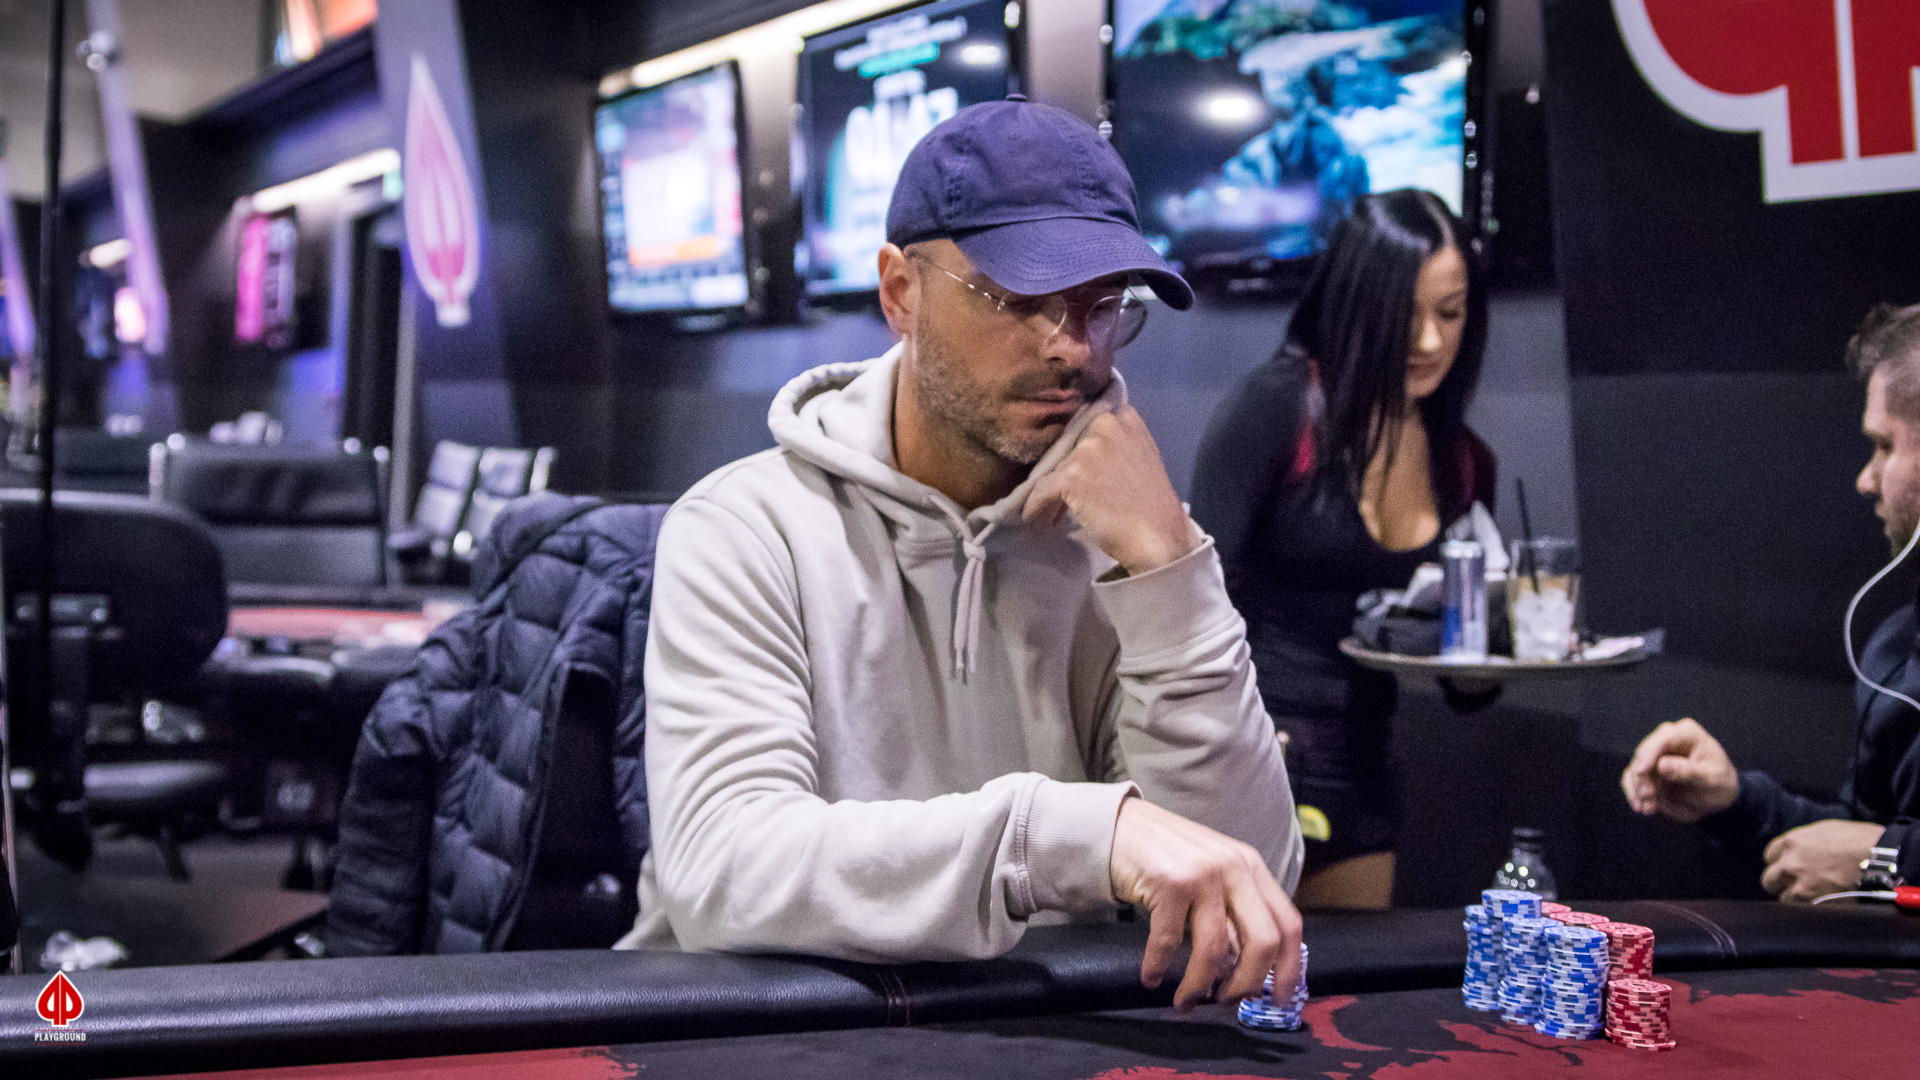 Gauthier leaves in fifth place ($3,370)